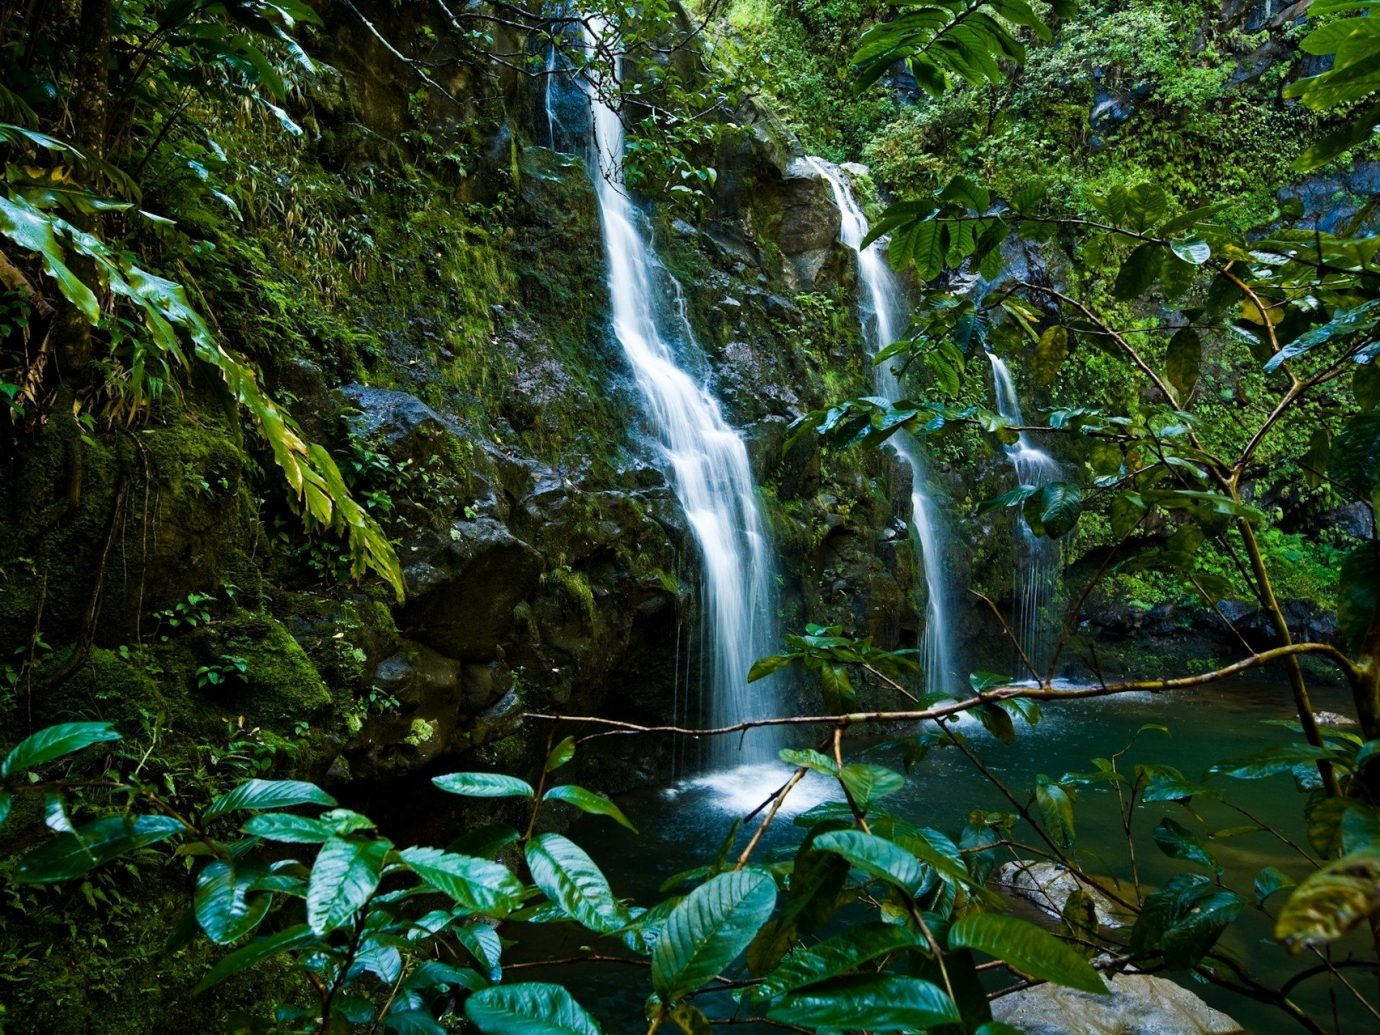 Natural wonders Nature Romance Trip Ideas view Waterfall tree water outdoor habitat vegetation natural environment rainforest body of water Forest wilderness old growth forest water feature Jungle woodland stream tropics surrounded wooded